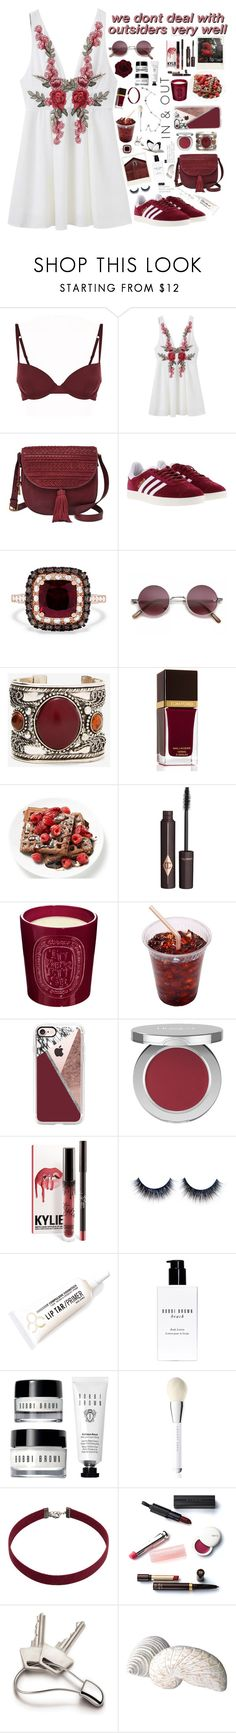 """OUT"" by miriamofficial5 ❤ liked on Polyvore featuring Elle Macpherson Body, FOSSIL, adidas, Effy Jewelry, Tom Ford, Charlotte Tilbury, Diptyque, Casetify, Honest Beauty and Obsessive Compulsive Cosmetics"